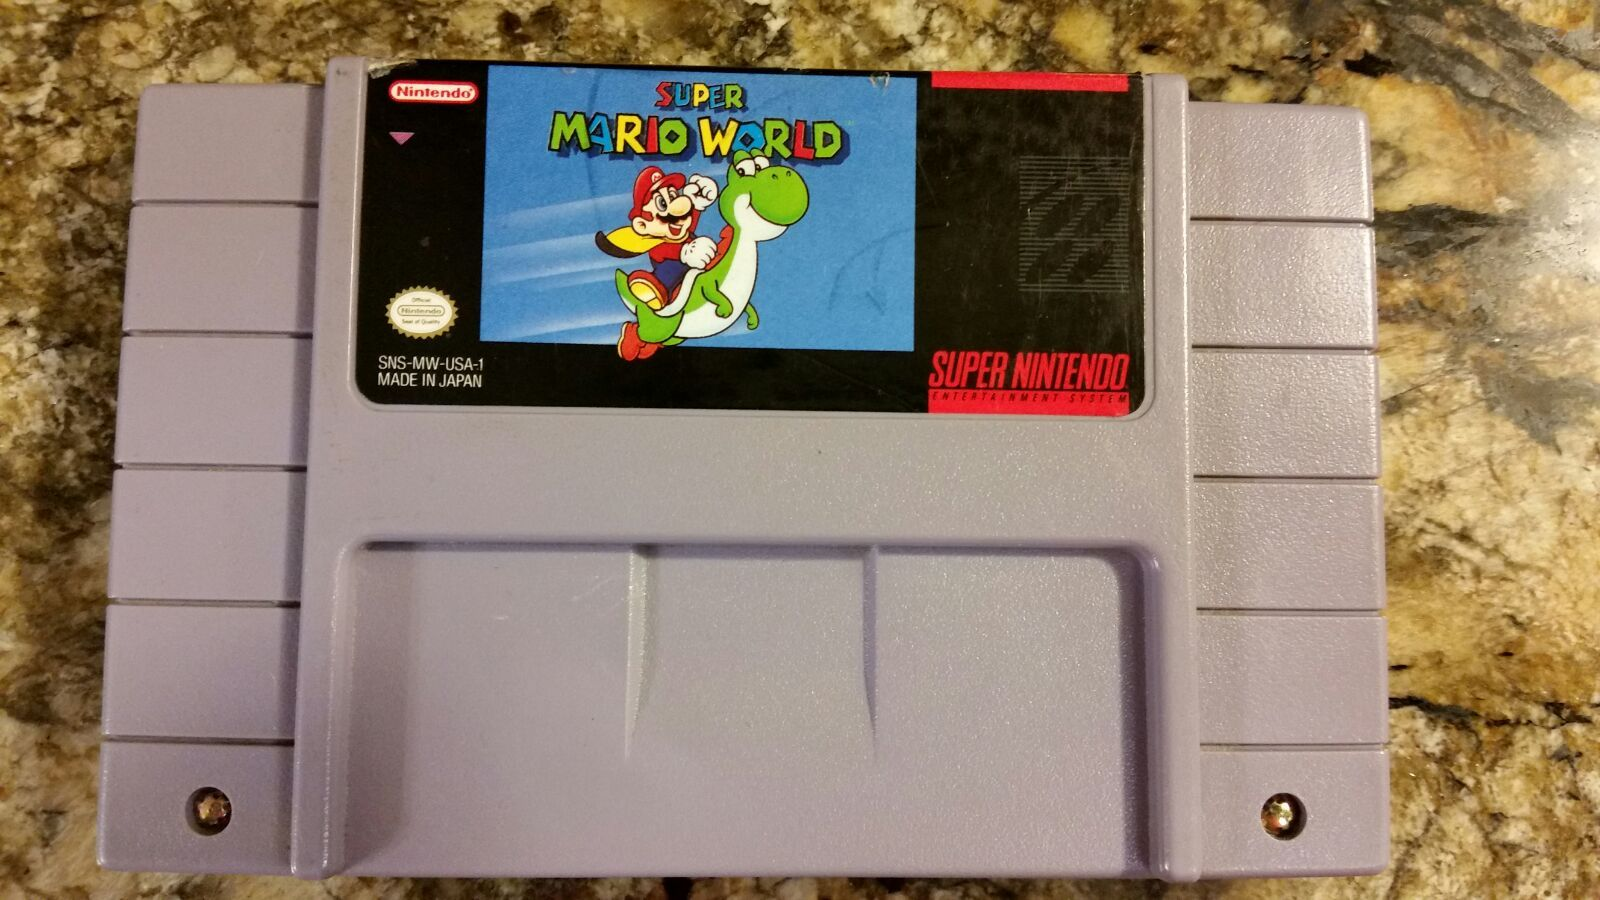 Super Mario World For Super Nintendo Cartridge Is In Good Condition Has Been Tested And Working Great Super Nintendo Super Mario World Nintendo